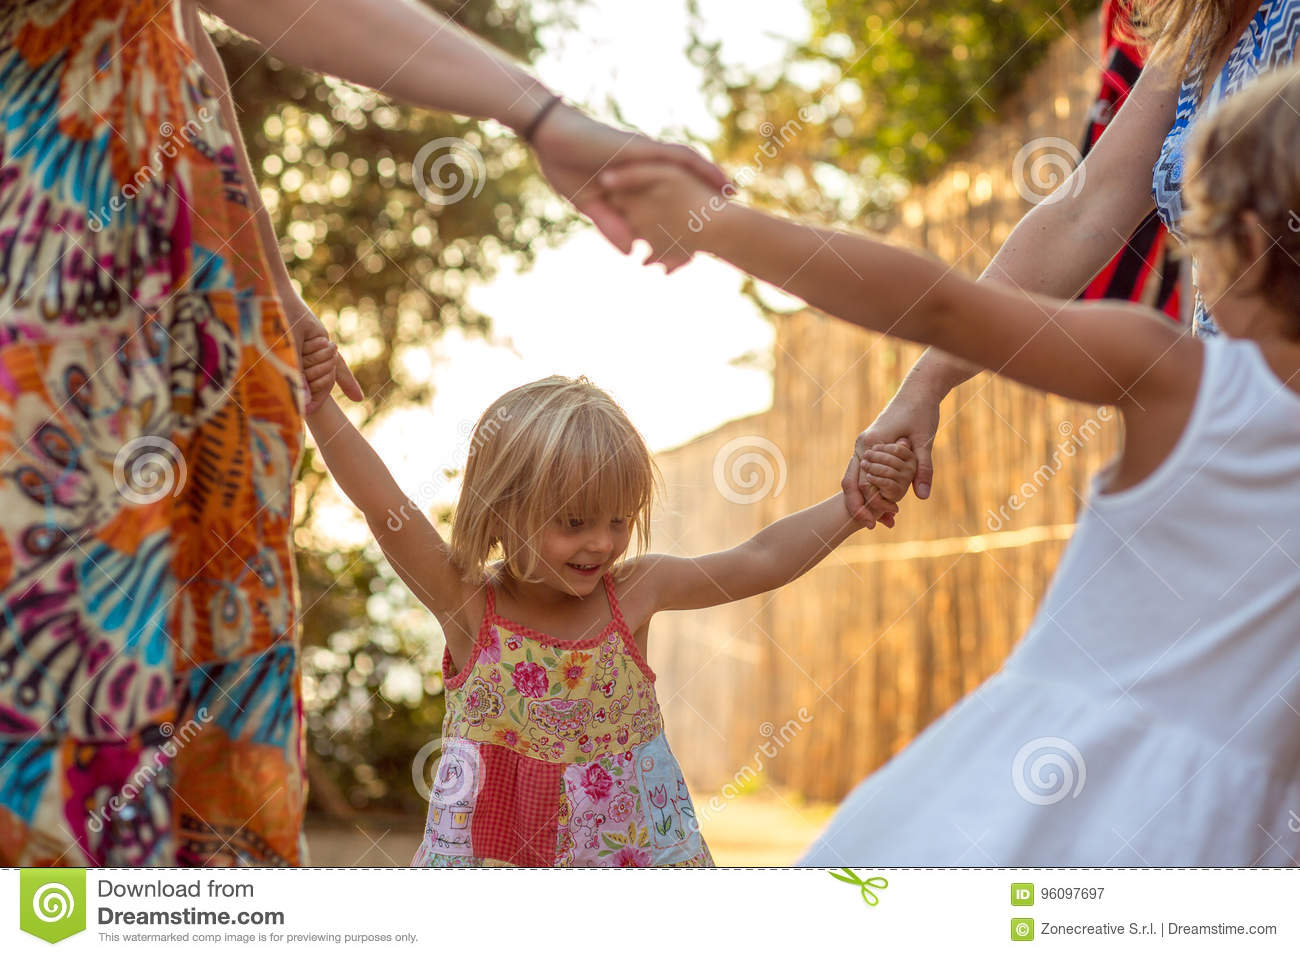 Young mum with blonde daughter girls smiling doing ring around the rosie . Warm sunset light. Family summer travel